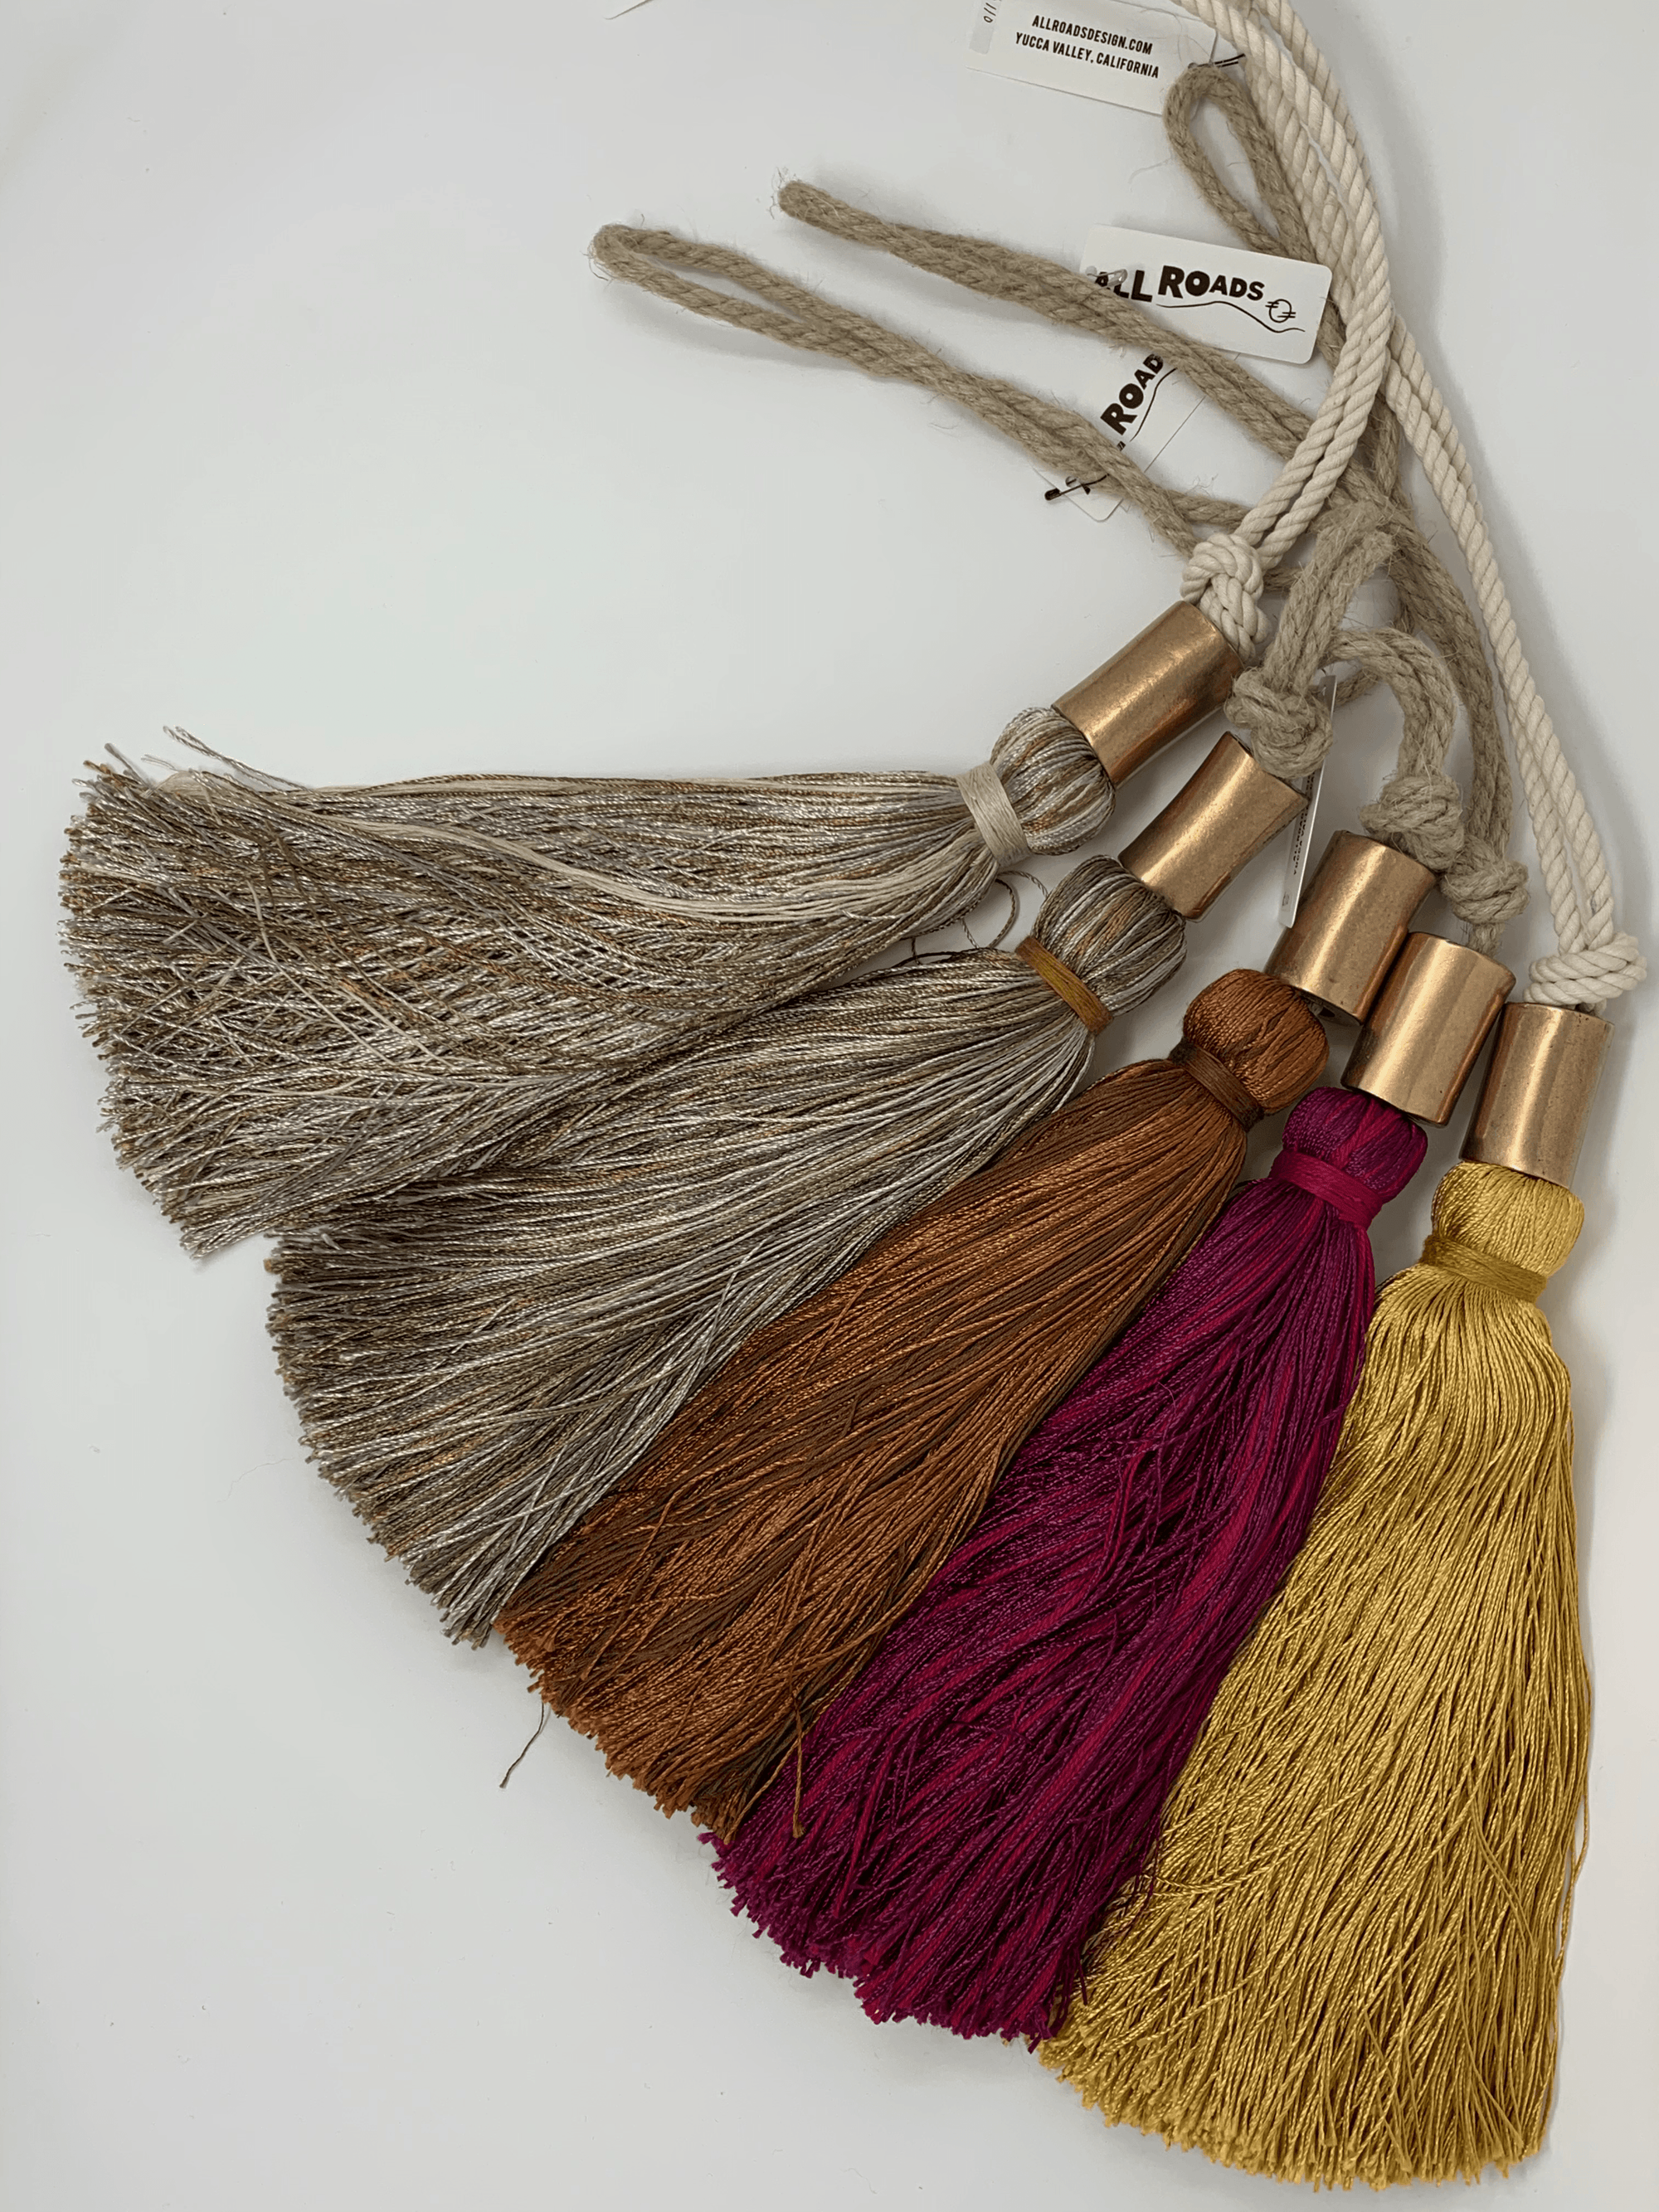 ALL ROADS, All Roads Bronze Bead Tassels, - Placewares